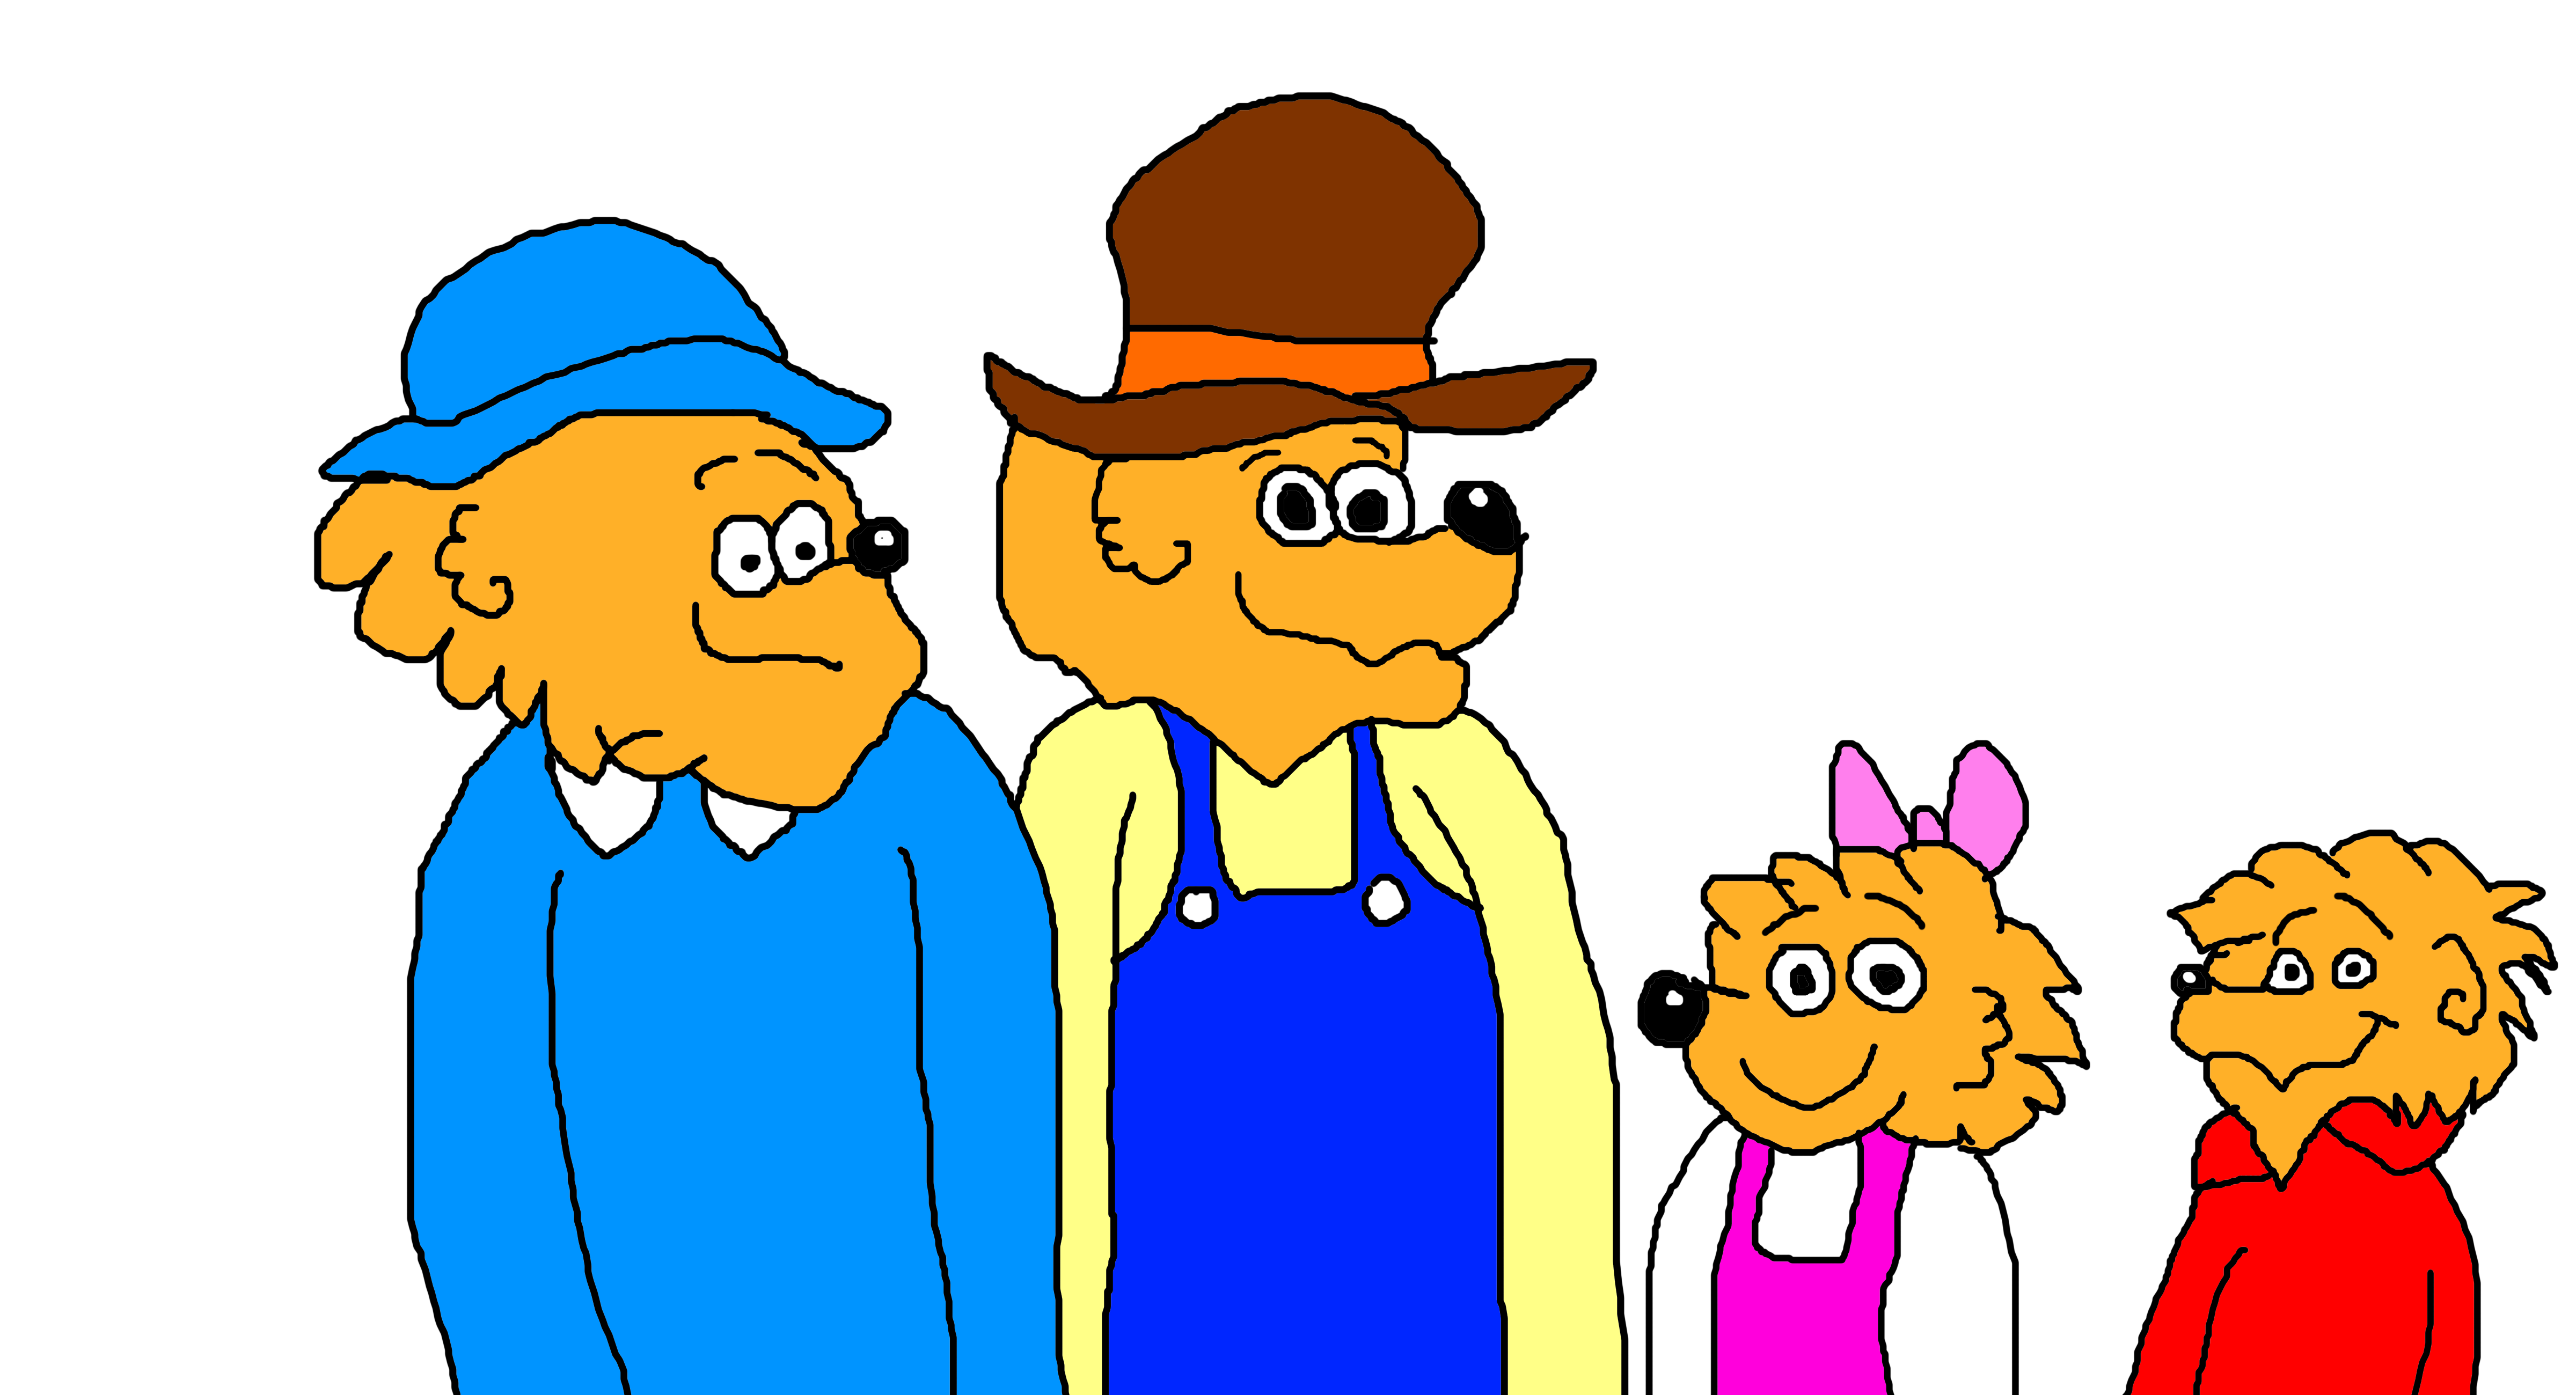 4800x2600 The Berenstain Bears By Mikejeddynsgamer89